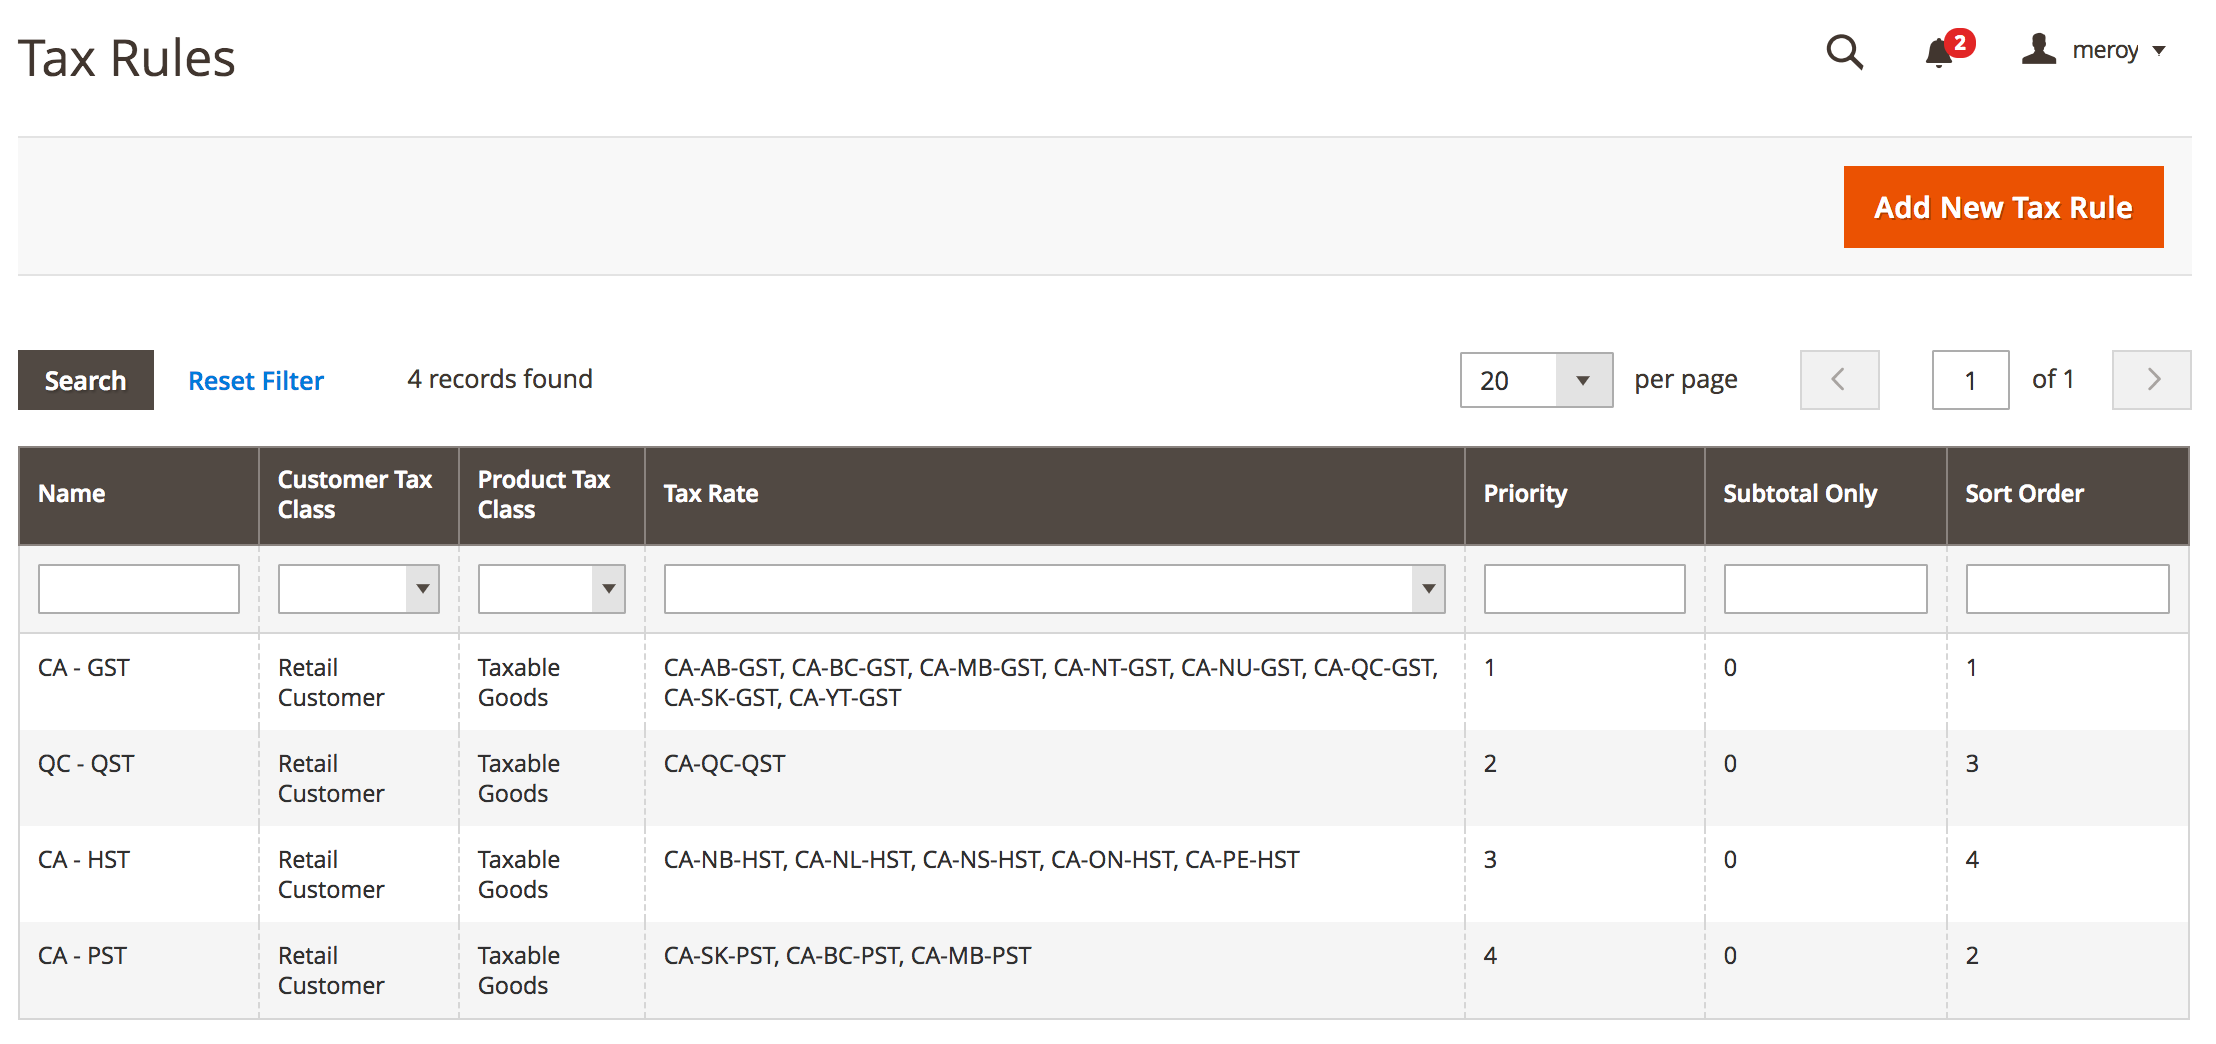 Tax Summary with multiple rates doesnt show details on